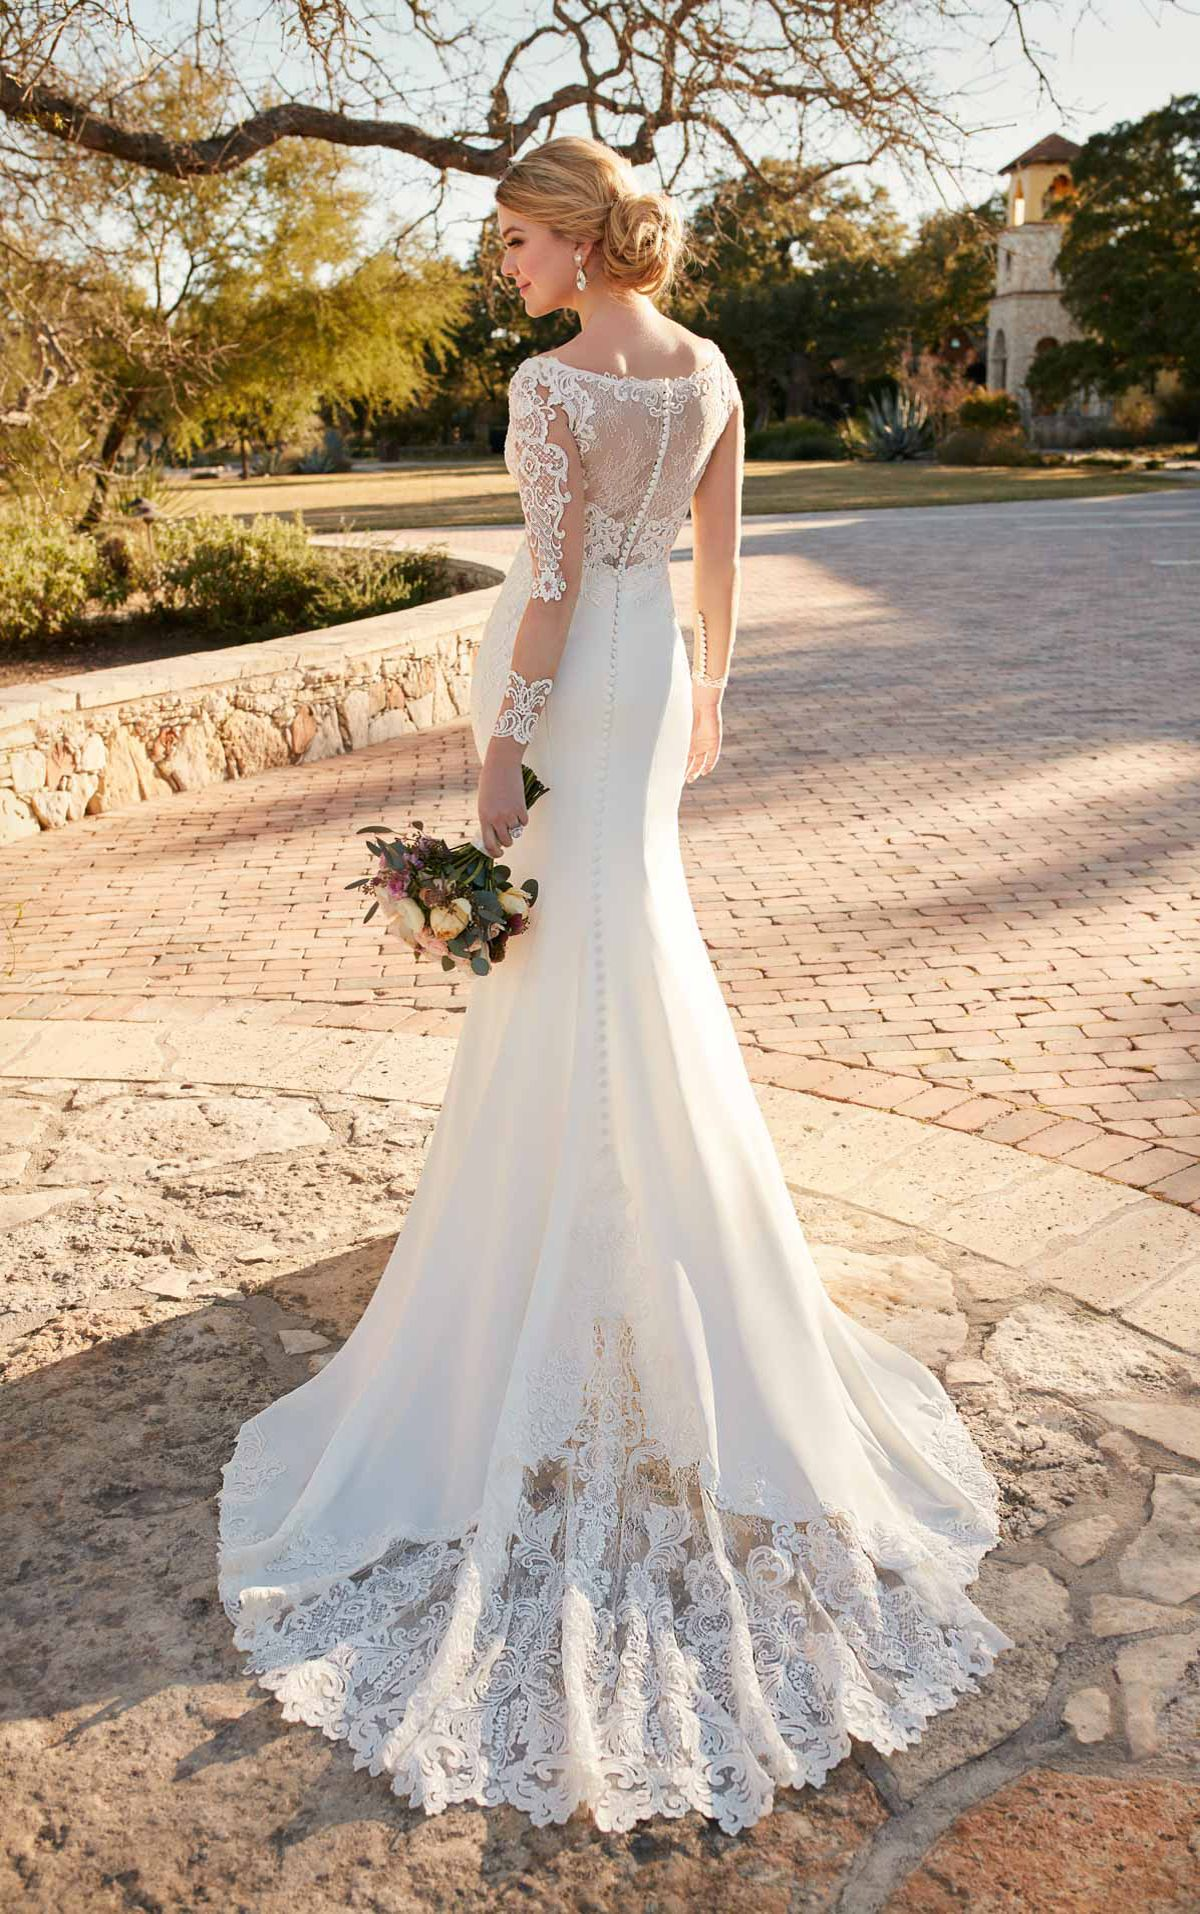 Hollywood wedding dress with lace train | Pinterest | Crepe skirts ...